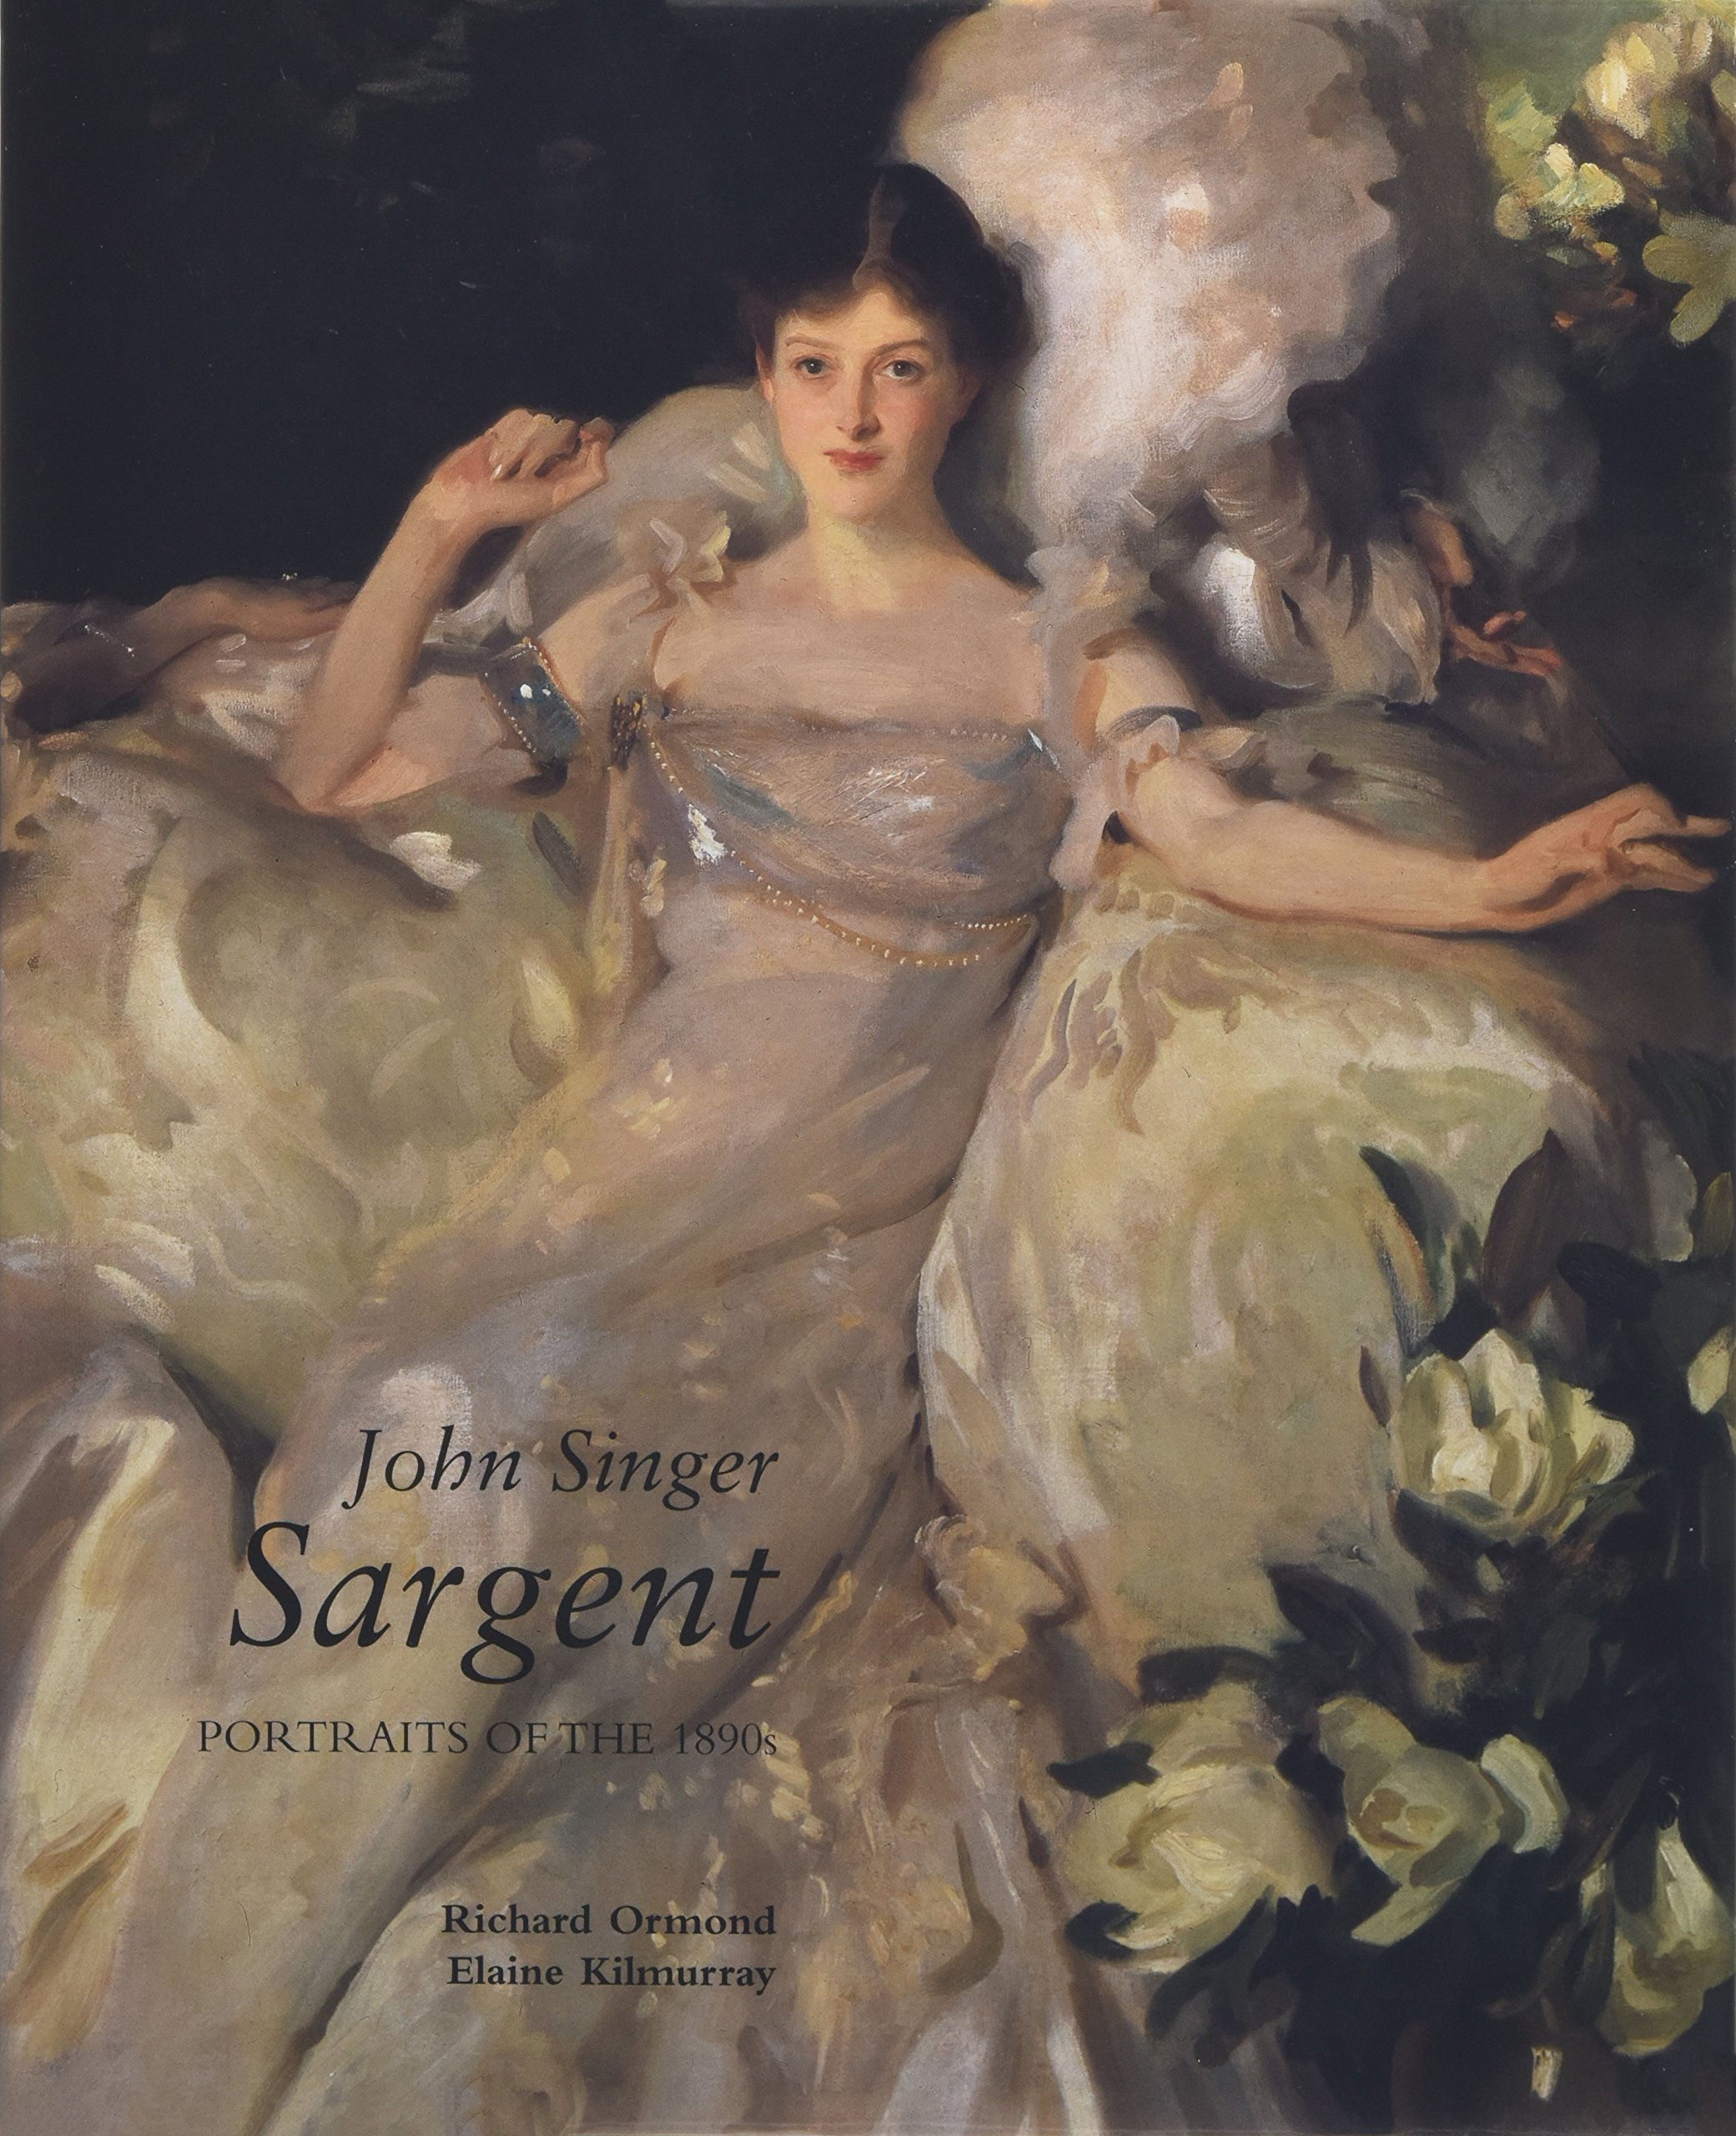 Download John Singer Sargent: Portraits of the 1890s ebook